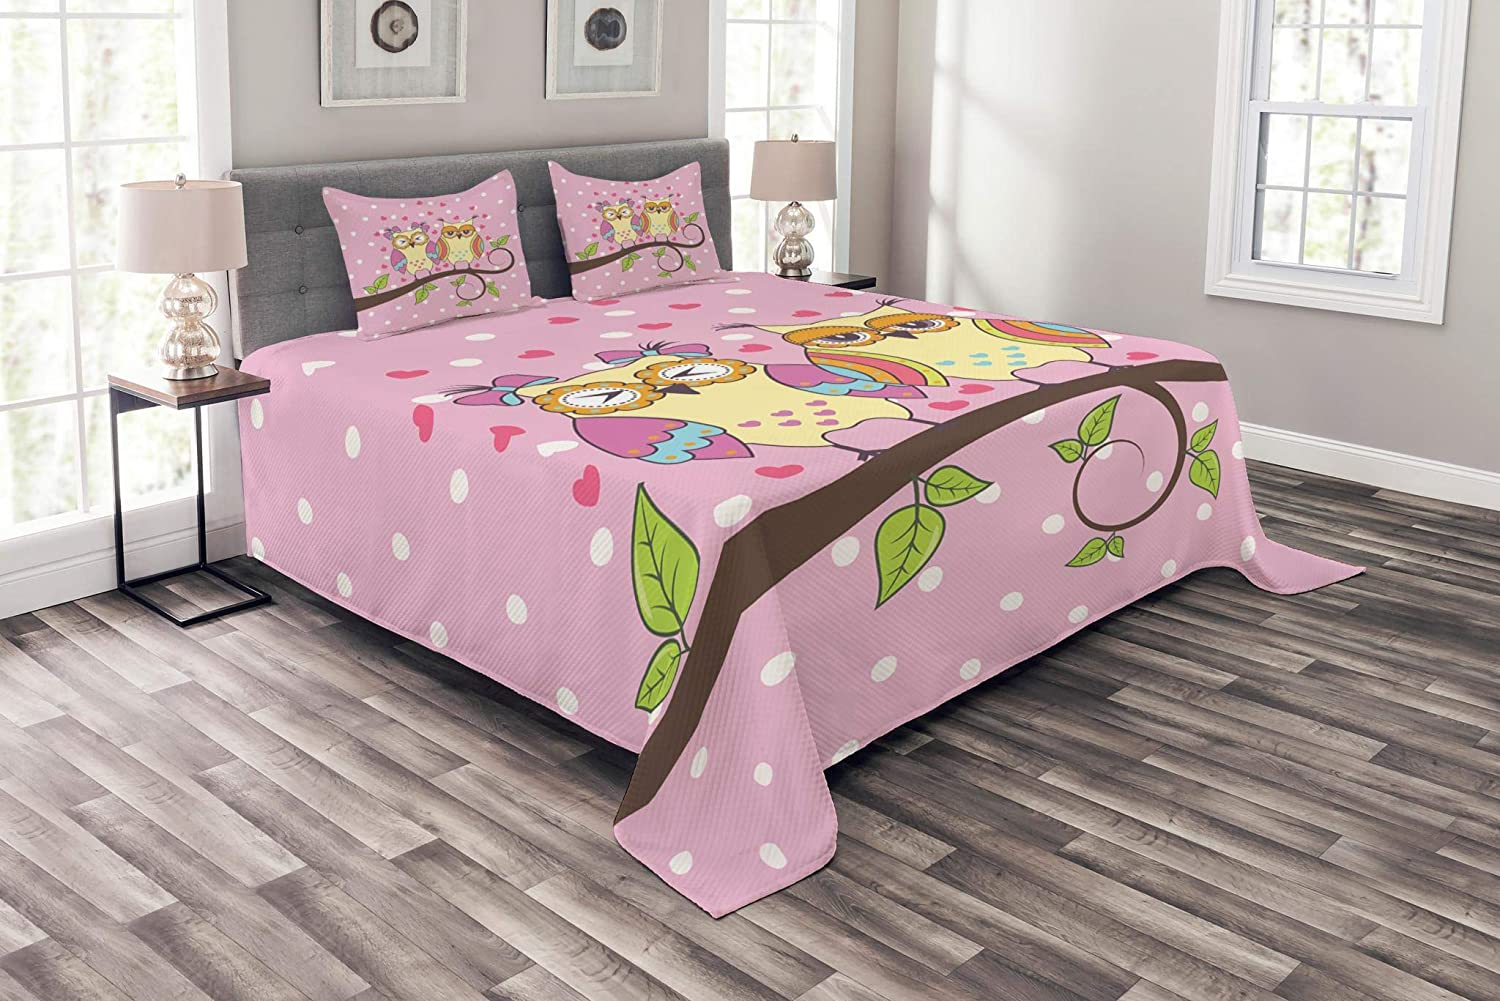 Ambesonne Owls Bedspread, Owls in Love on Branch Polkadots Leaves Hearts Romance Theme, Decorative Quilted 3 Piece Coverlet Set with 2 Pillow Shams, Queen Size, Yellow Apple